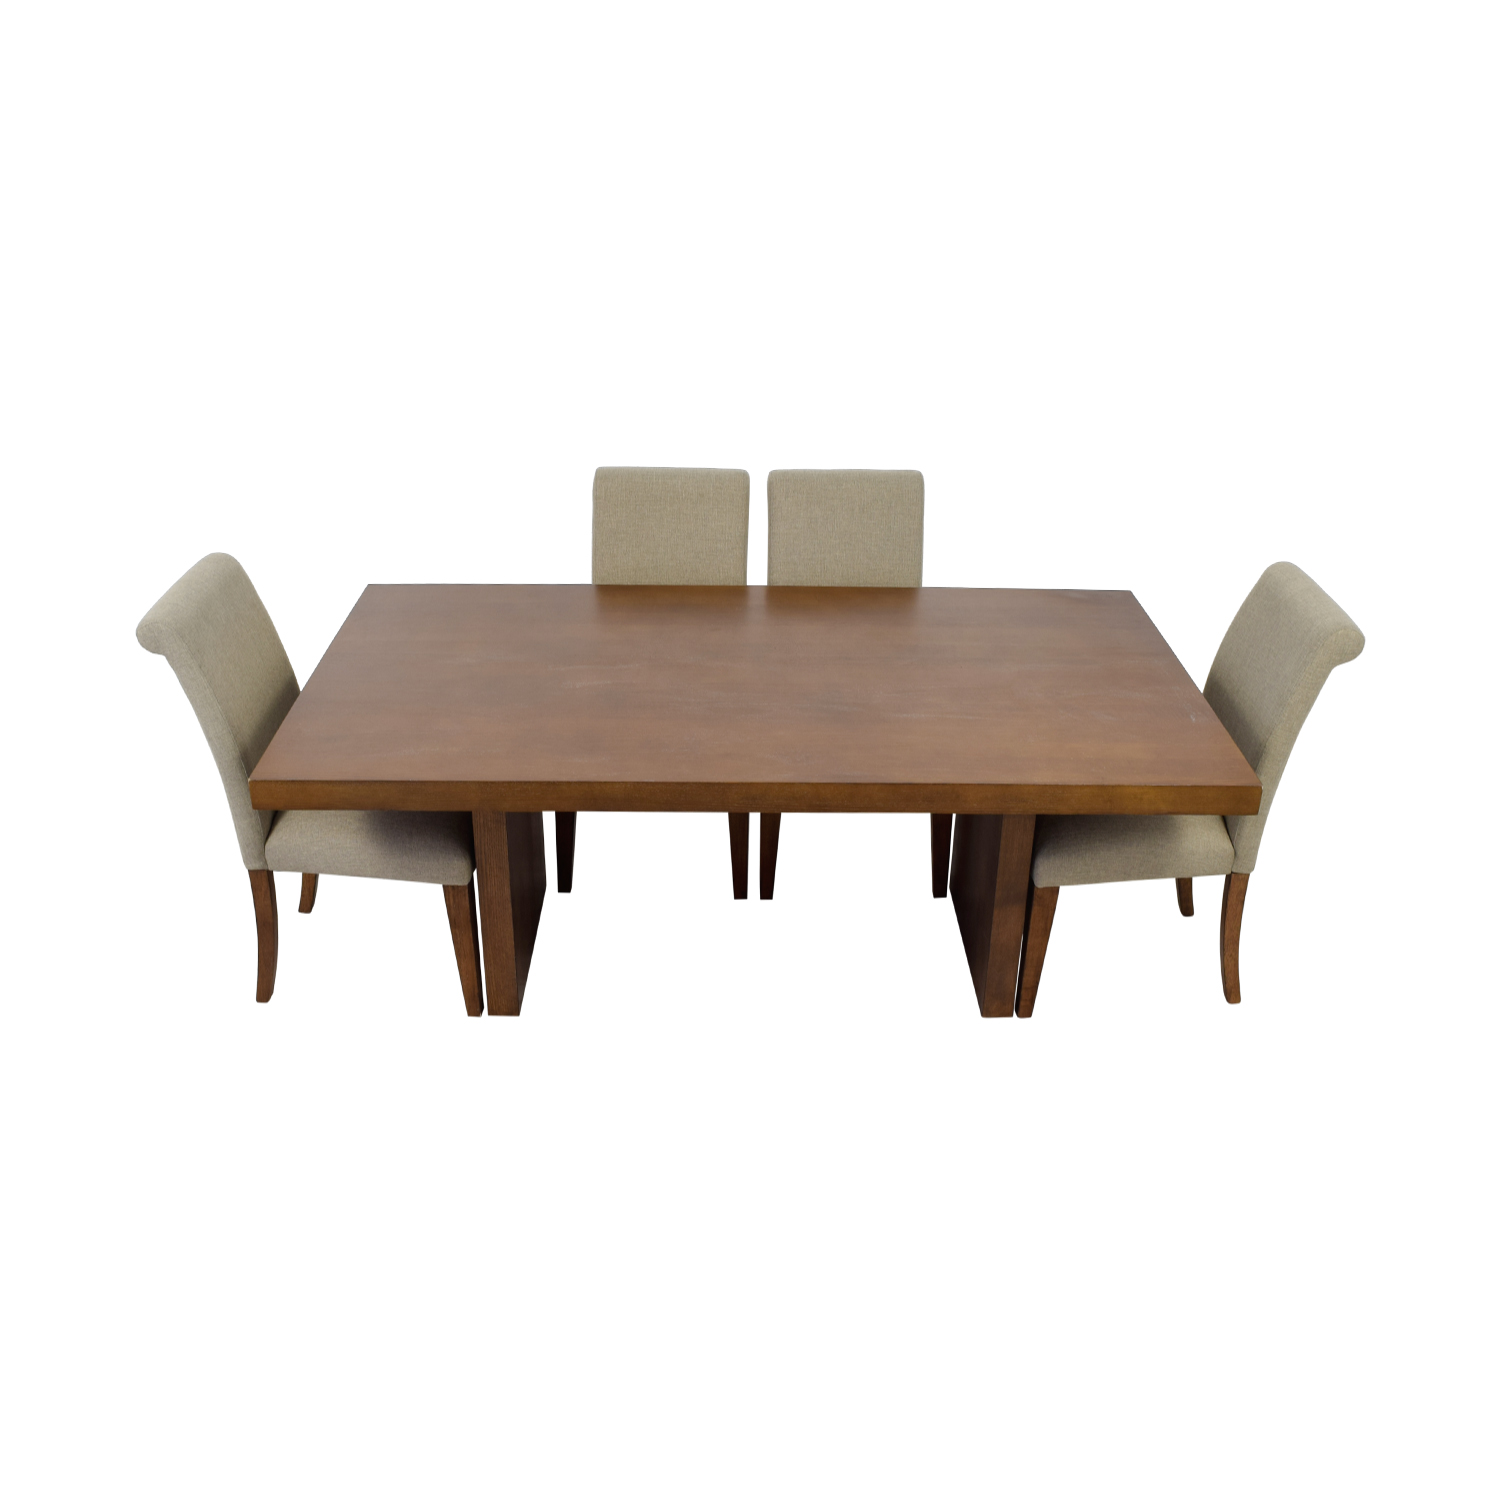 buy Macy's Wood Dining Set with Upholstered Chairs Macy's Dining Sets